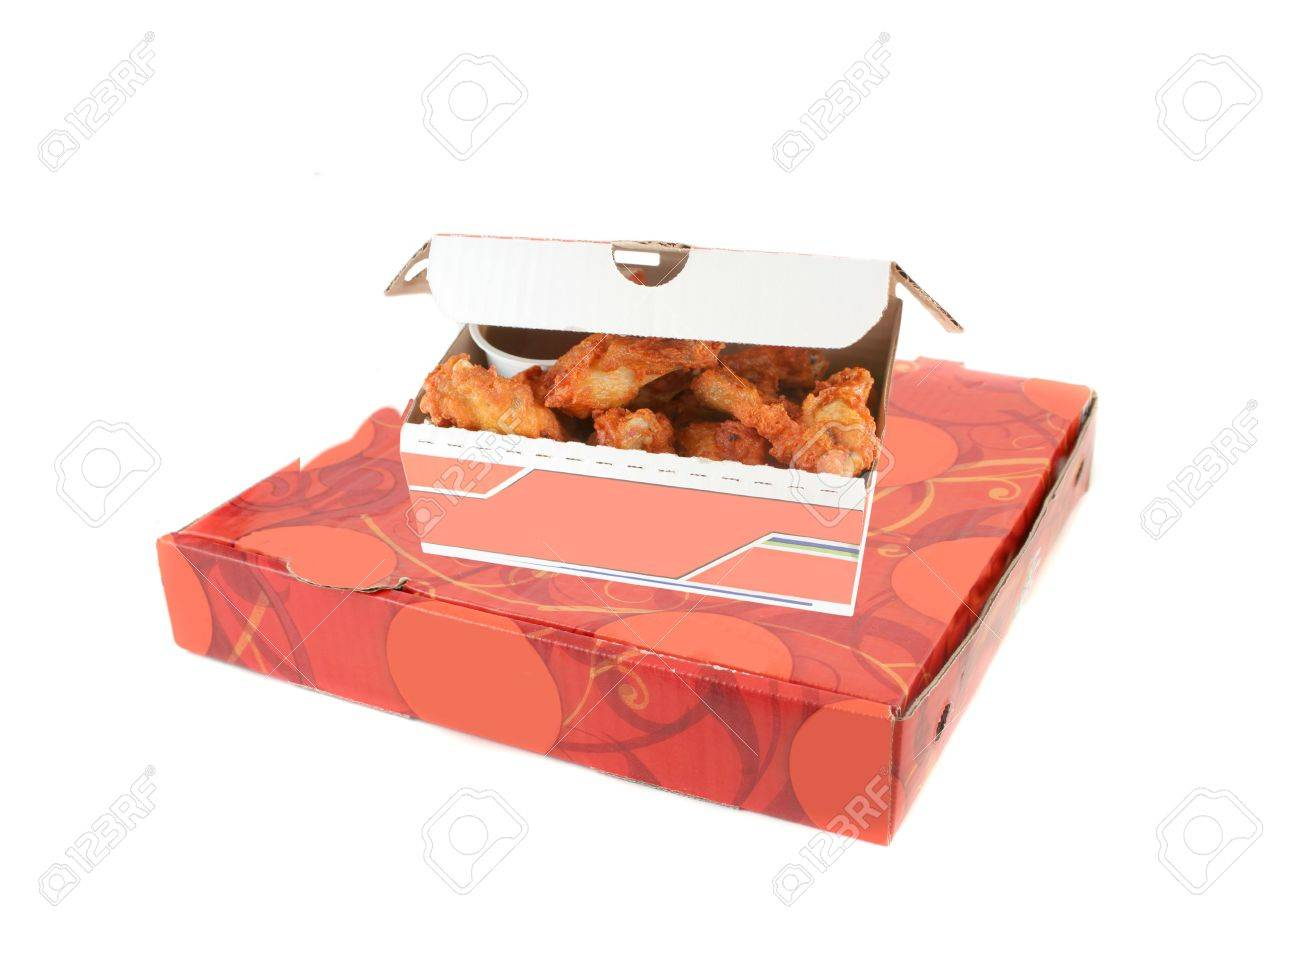 Takeout Cardboard Pizza Delivery Box And Golden Crispy Chicken ...